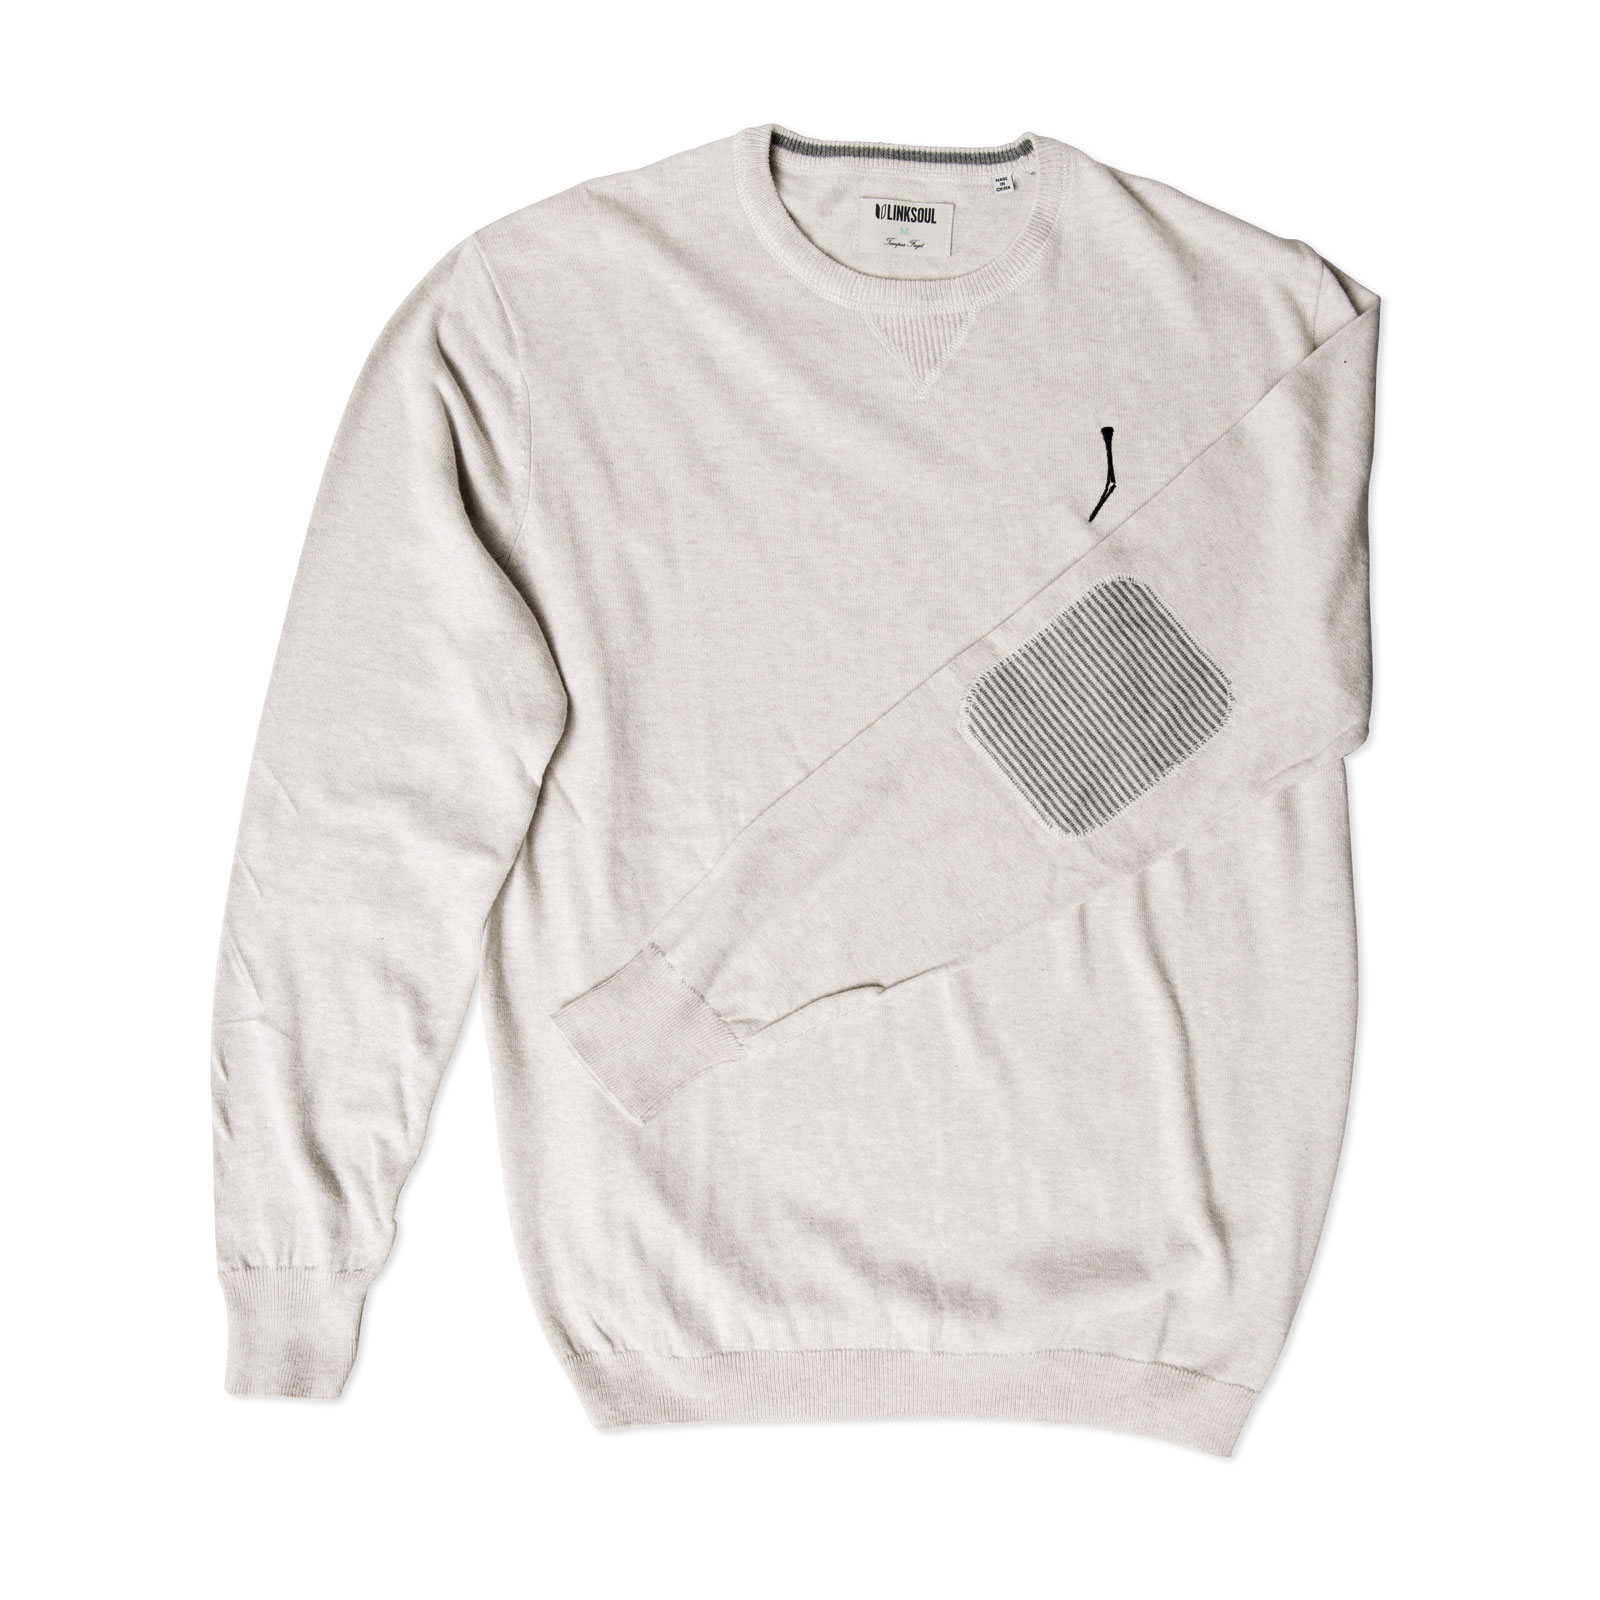 TGJ x Linksoul Cotton-Cashmere Sweater Natural